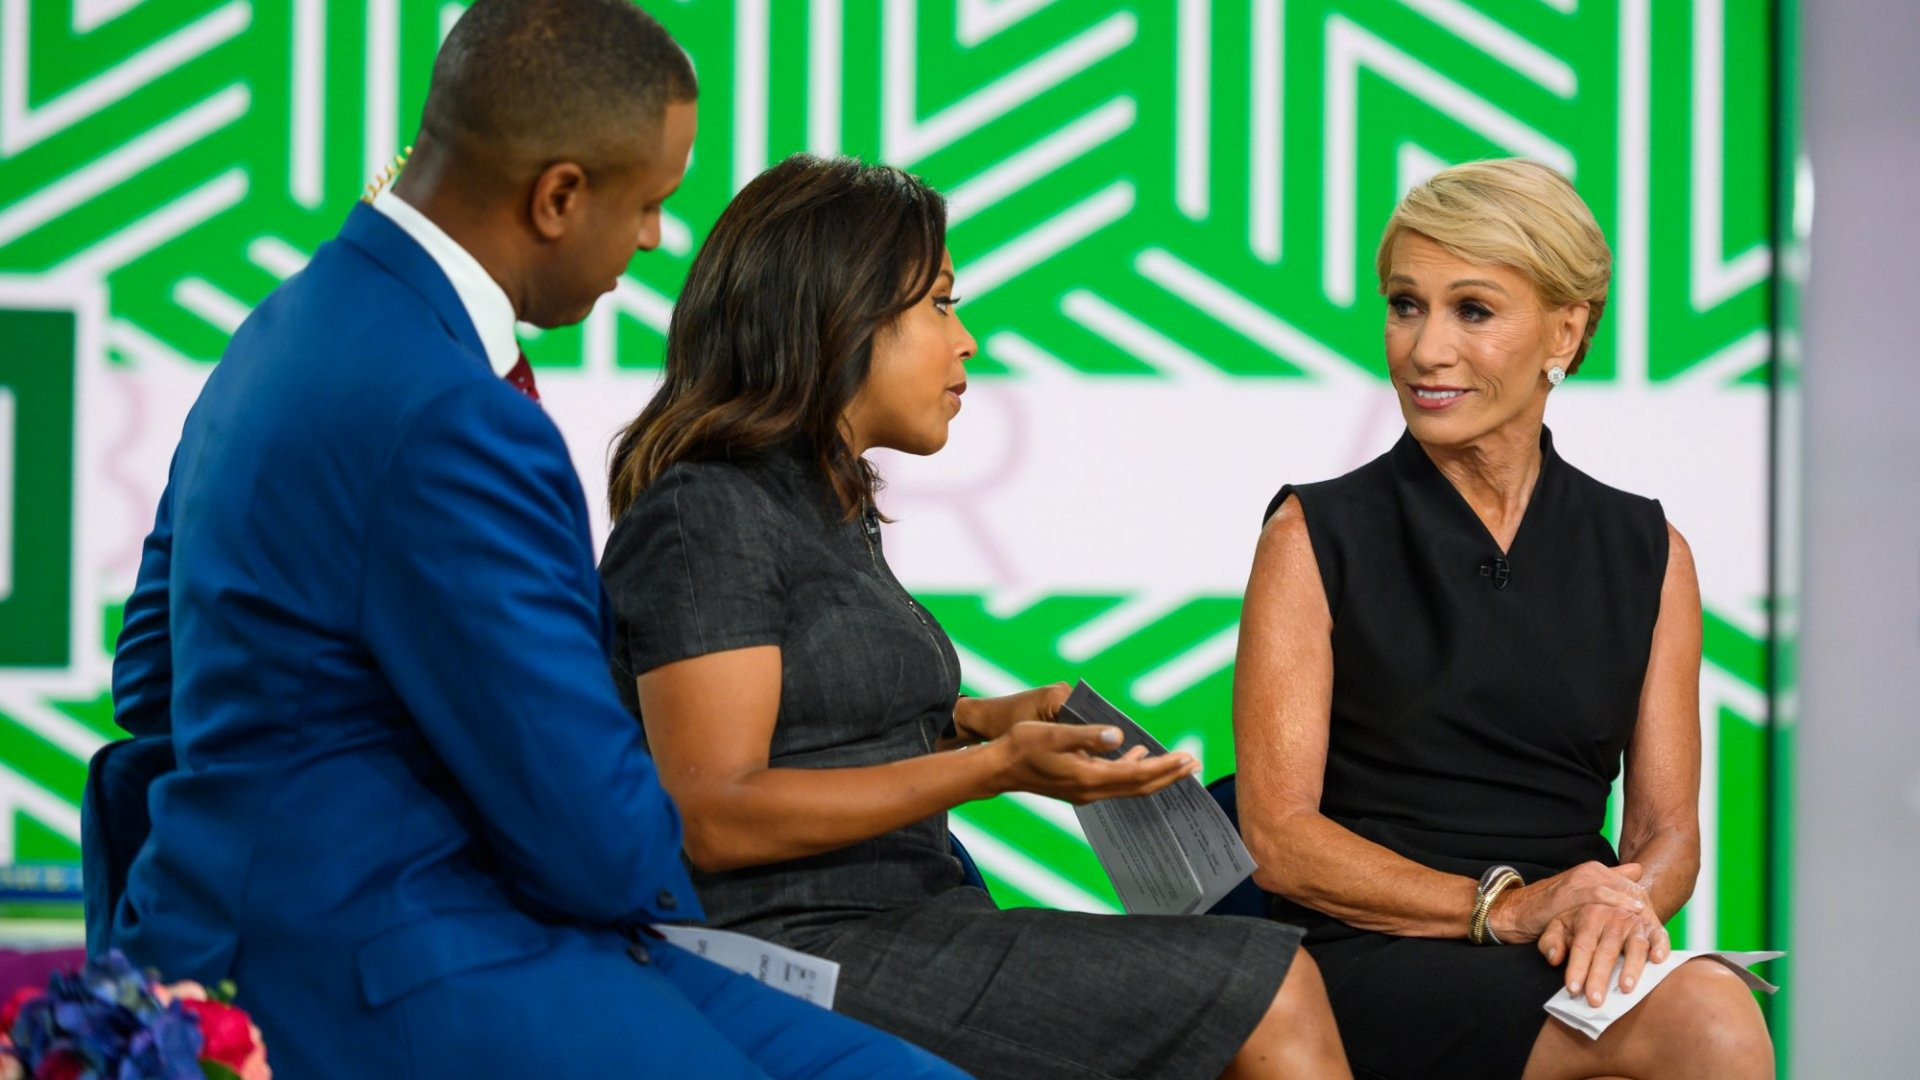 Barbara Corcoran: This Insult Was The Best Advice I Ever Received. It's The Reason I'm Successful Today